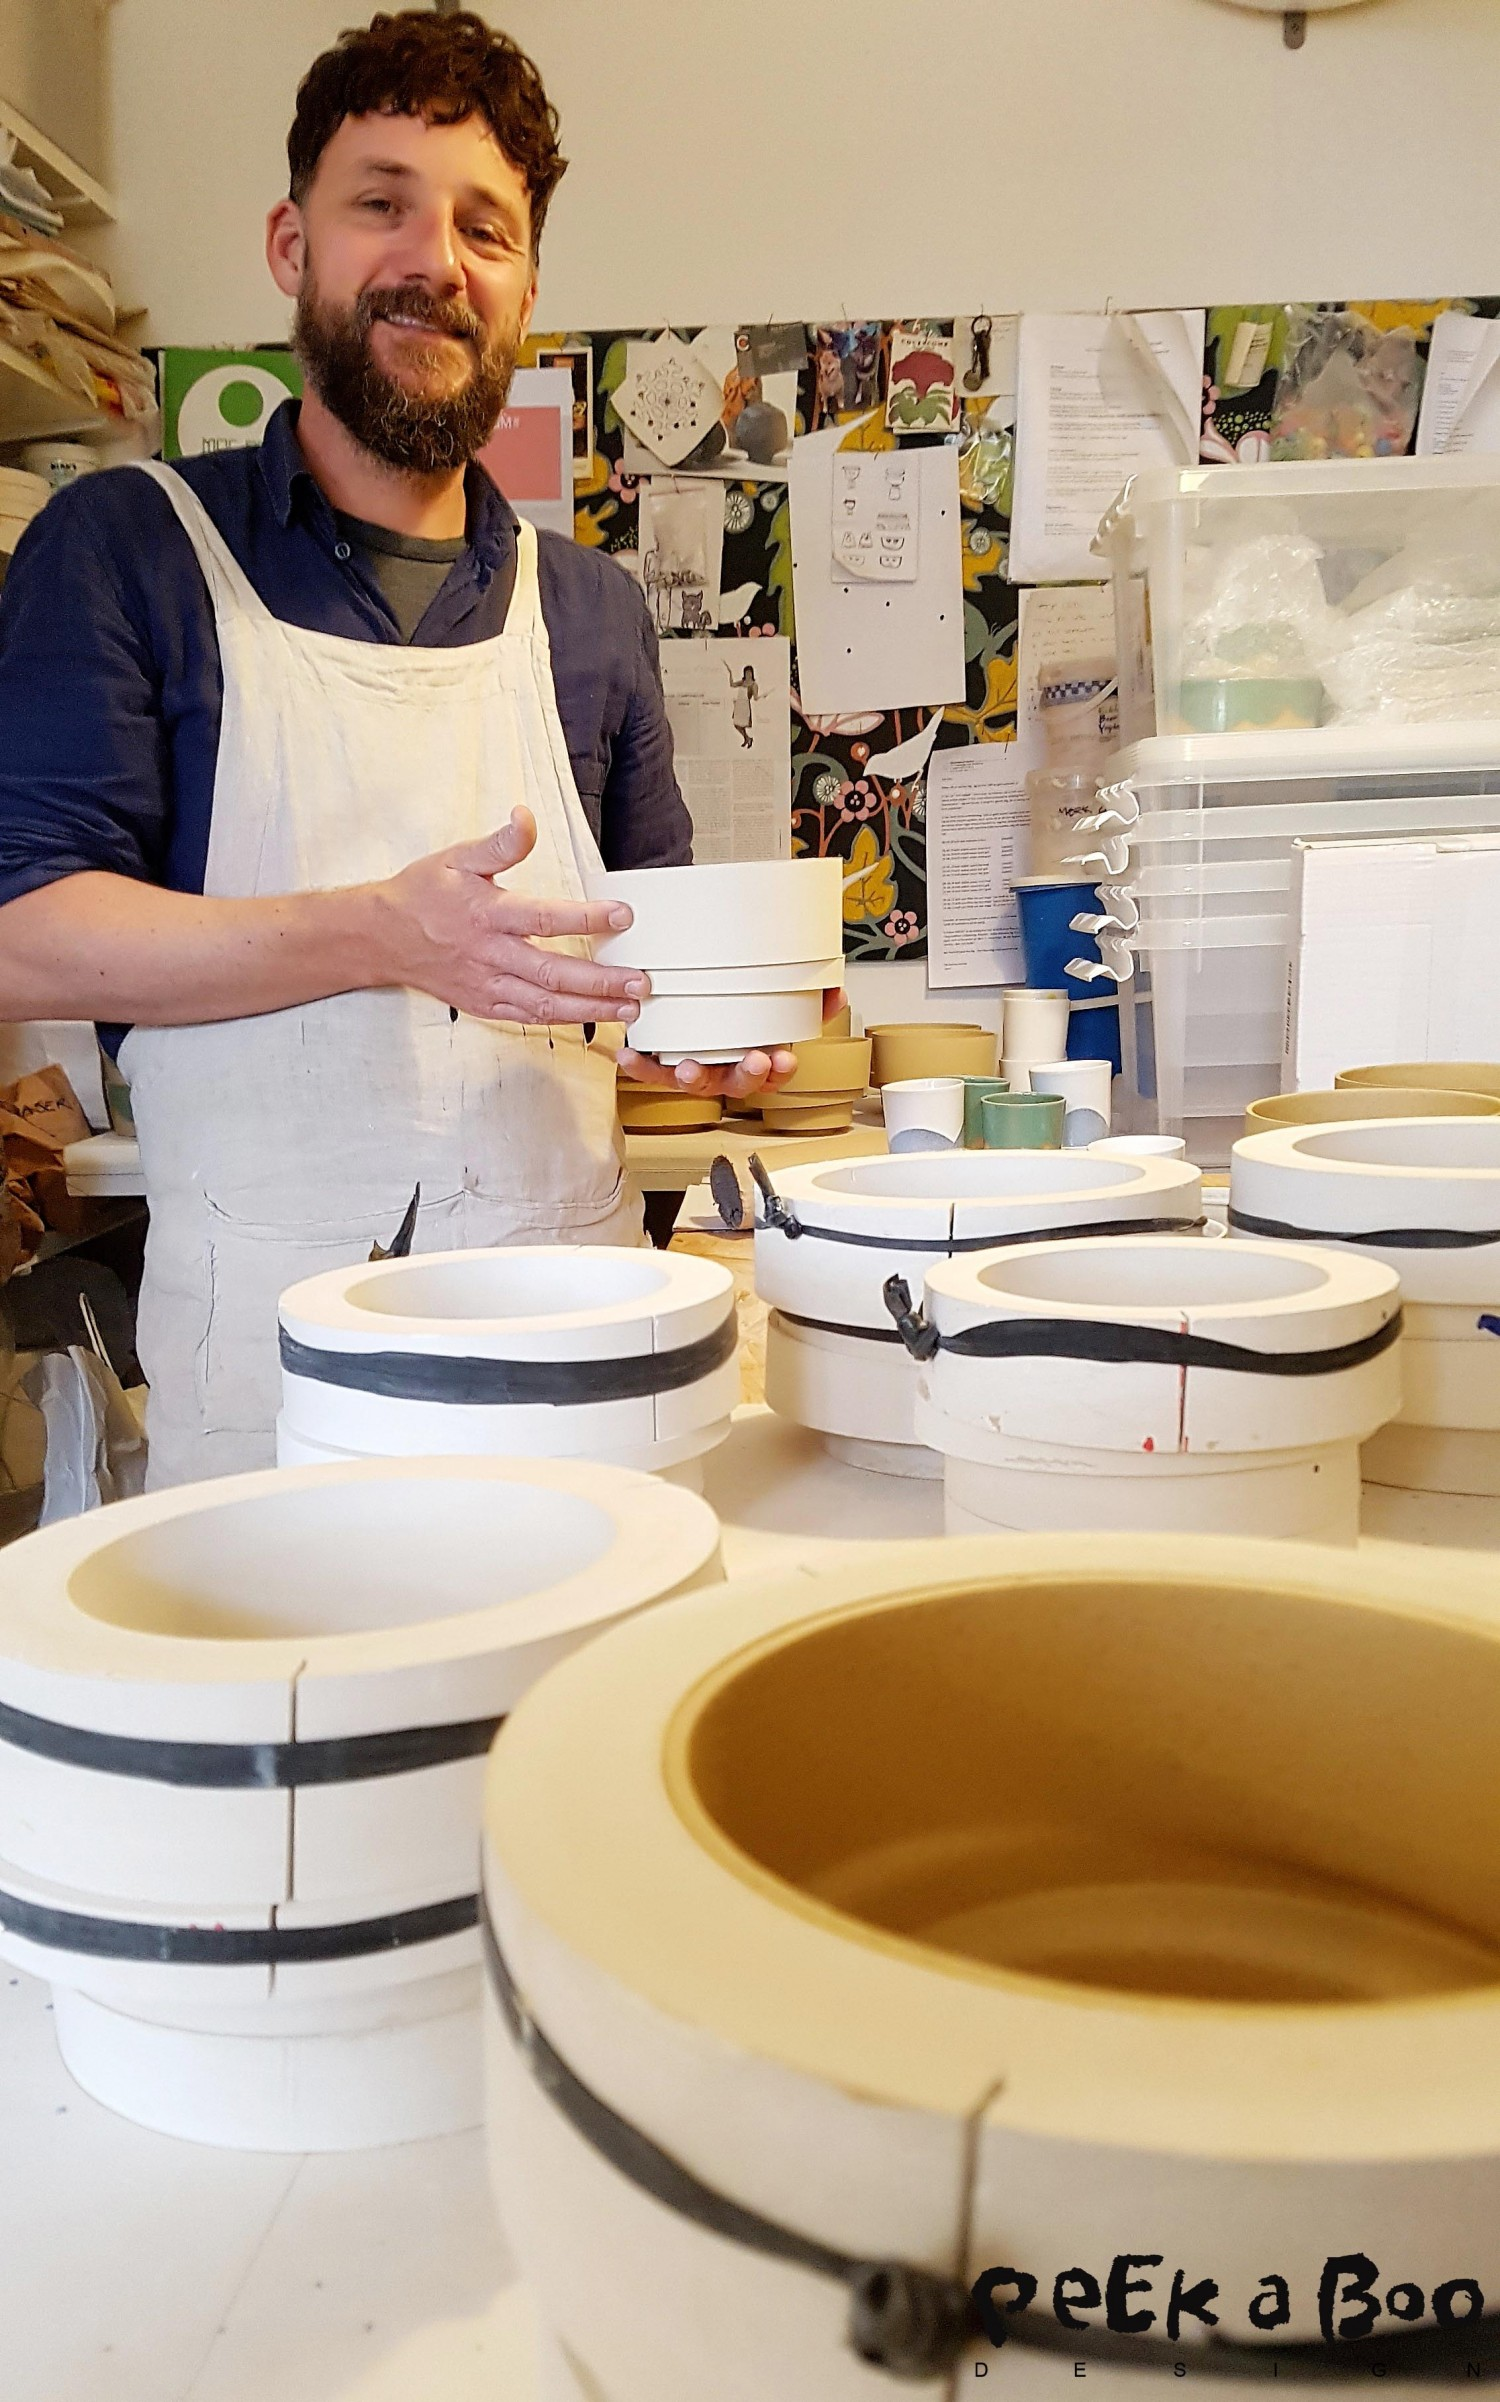 Lars Rank in his workspace, with tabel filled with moulds for more pots.